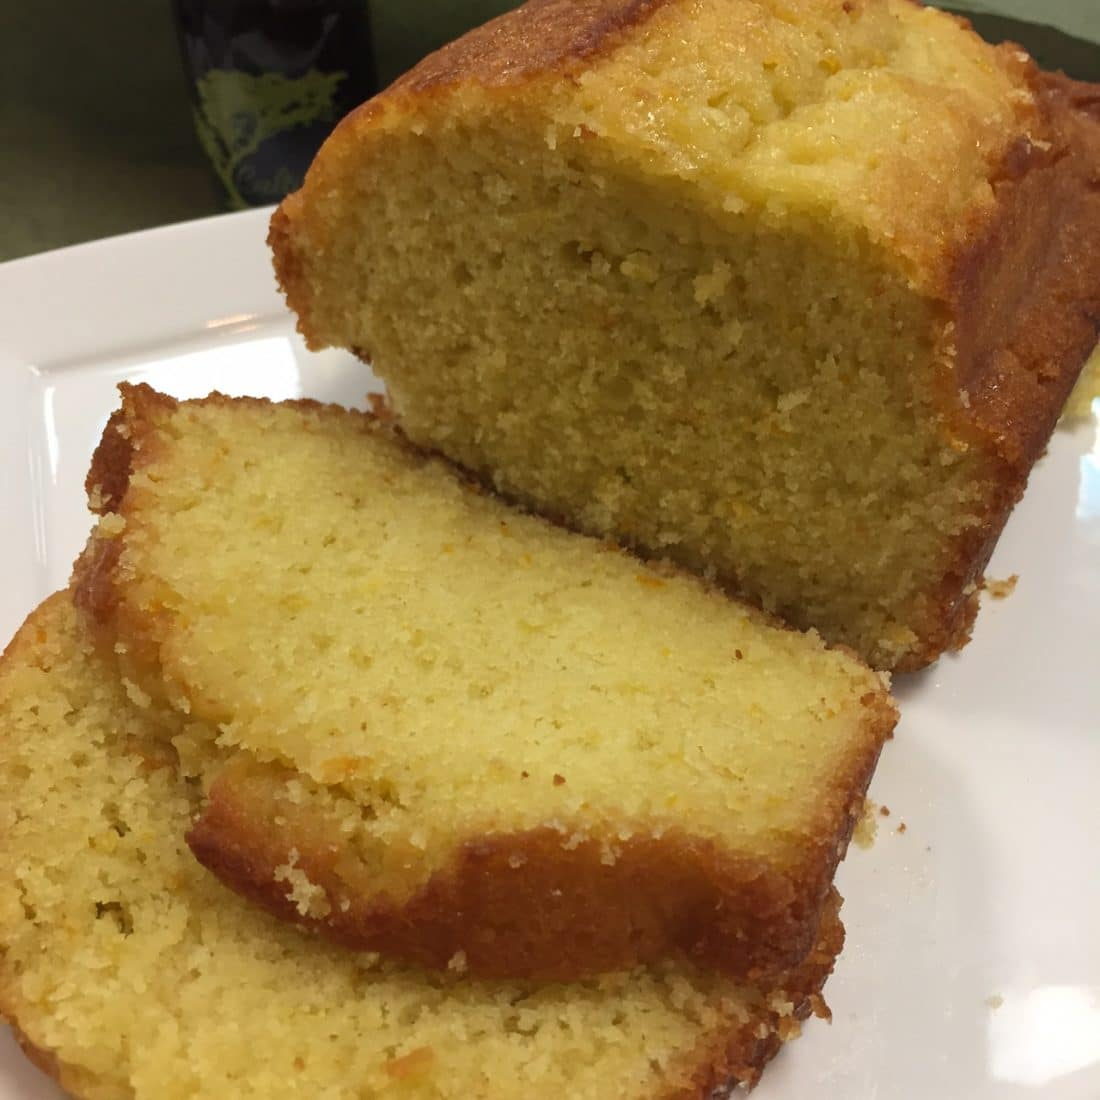 Cultivated Tree Lemon Olive Oil Cake on plate